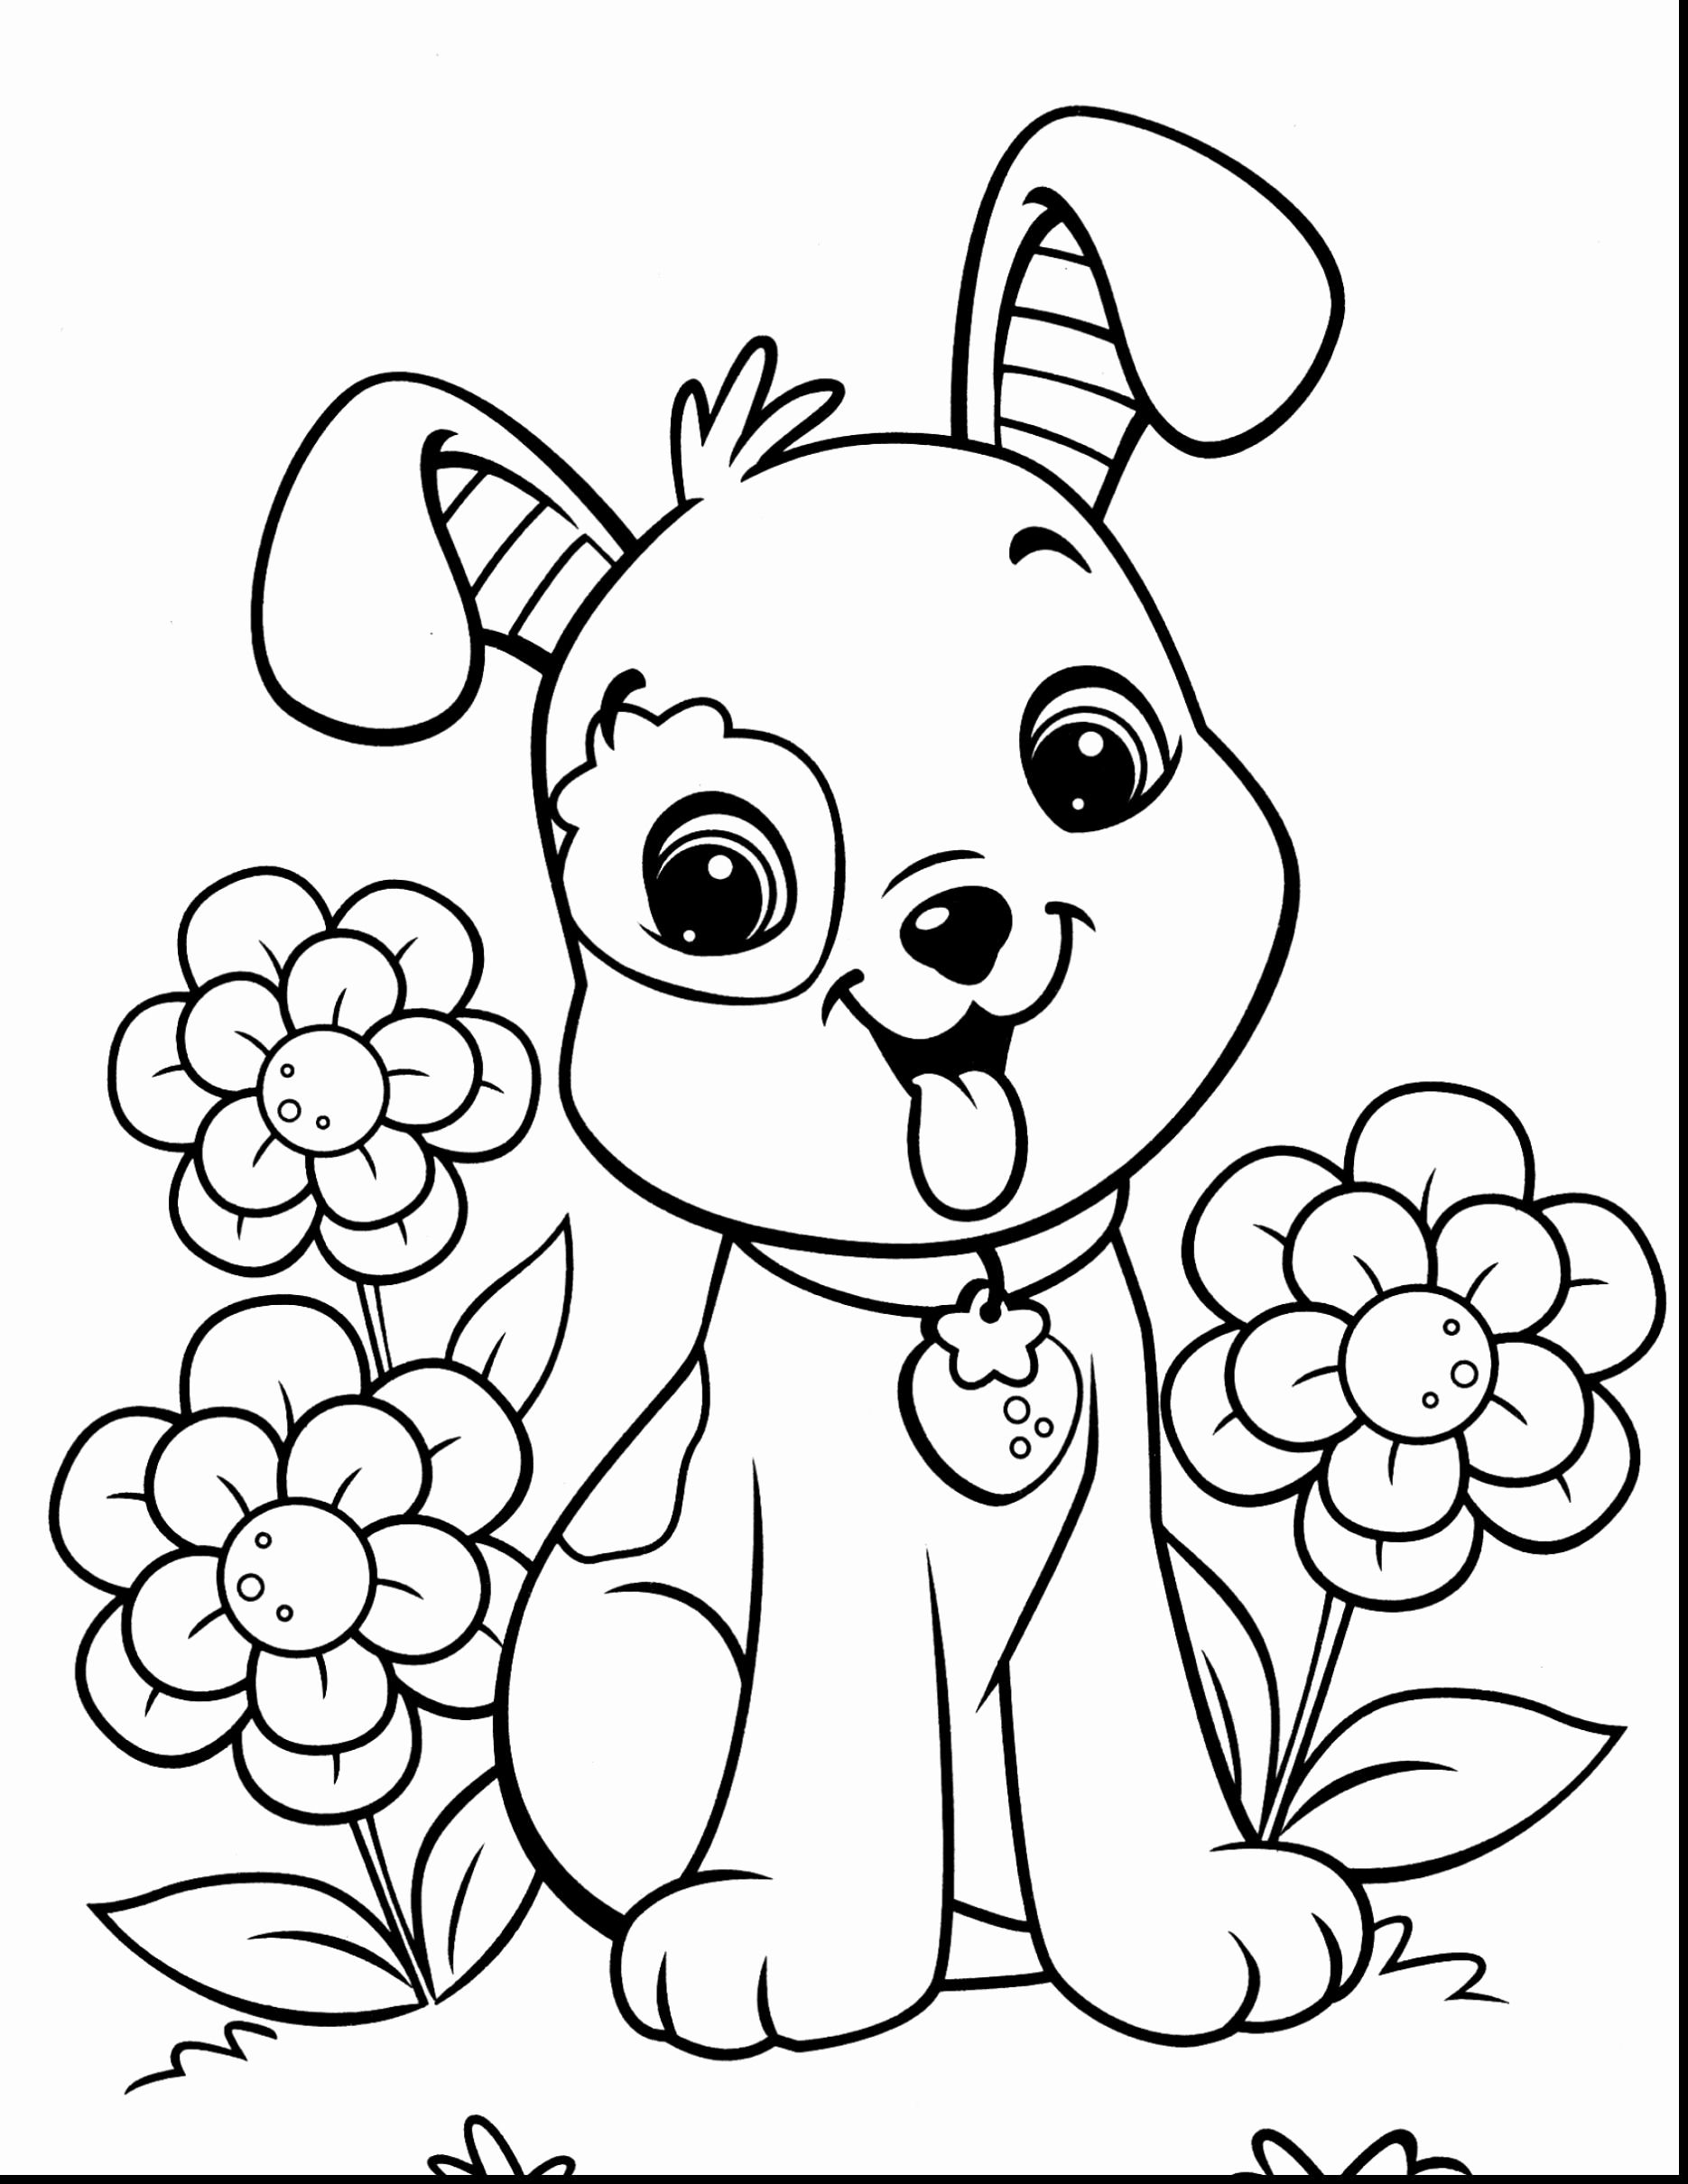 Coloring Pages For Kids Cat And Dog Cat Dog Free Printable Coloring Pages Coloring Pages For Kids Puppy Coloring Pages Dog Coloring Page Cat Coloring Page